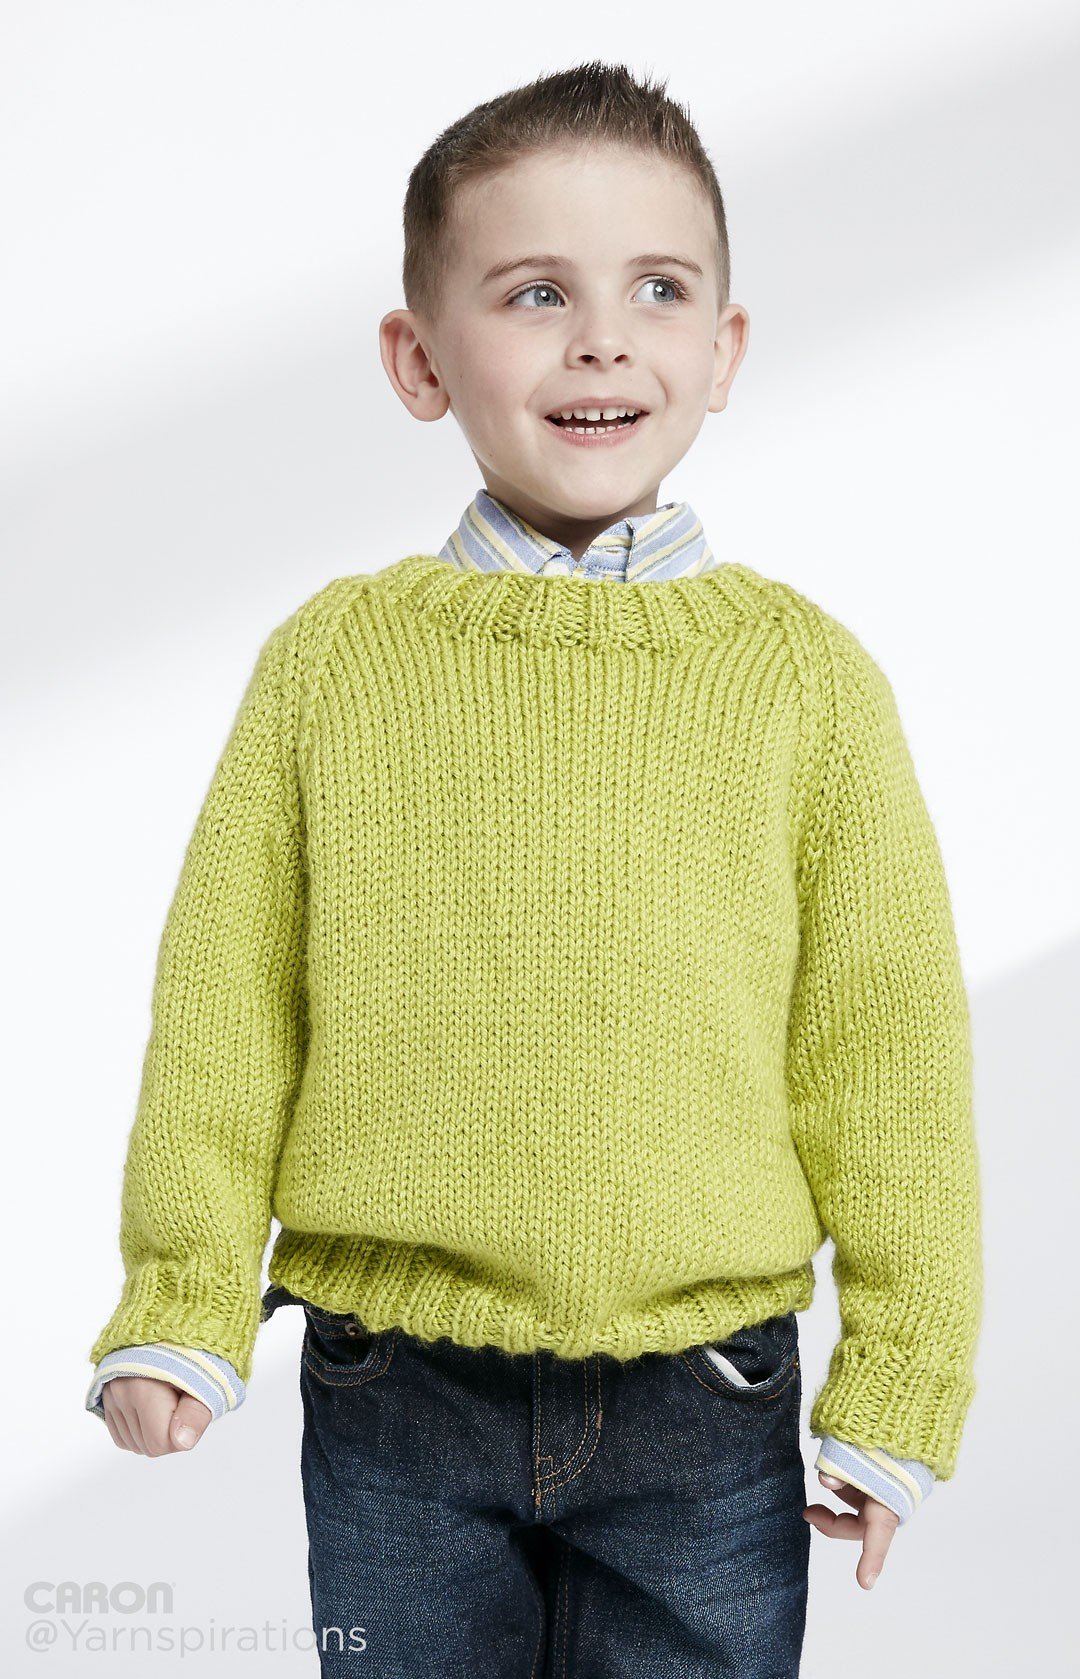 Pullover Knitting Pattern : Caron child s knit crew neck pullover pattern